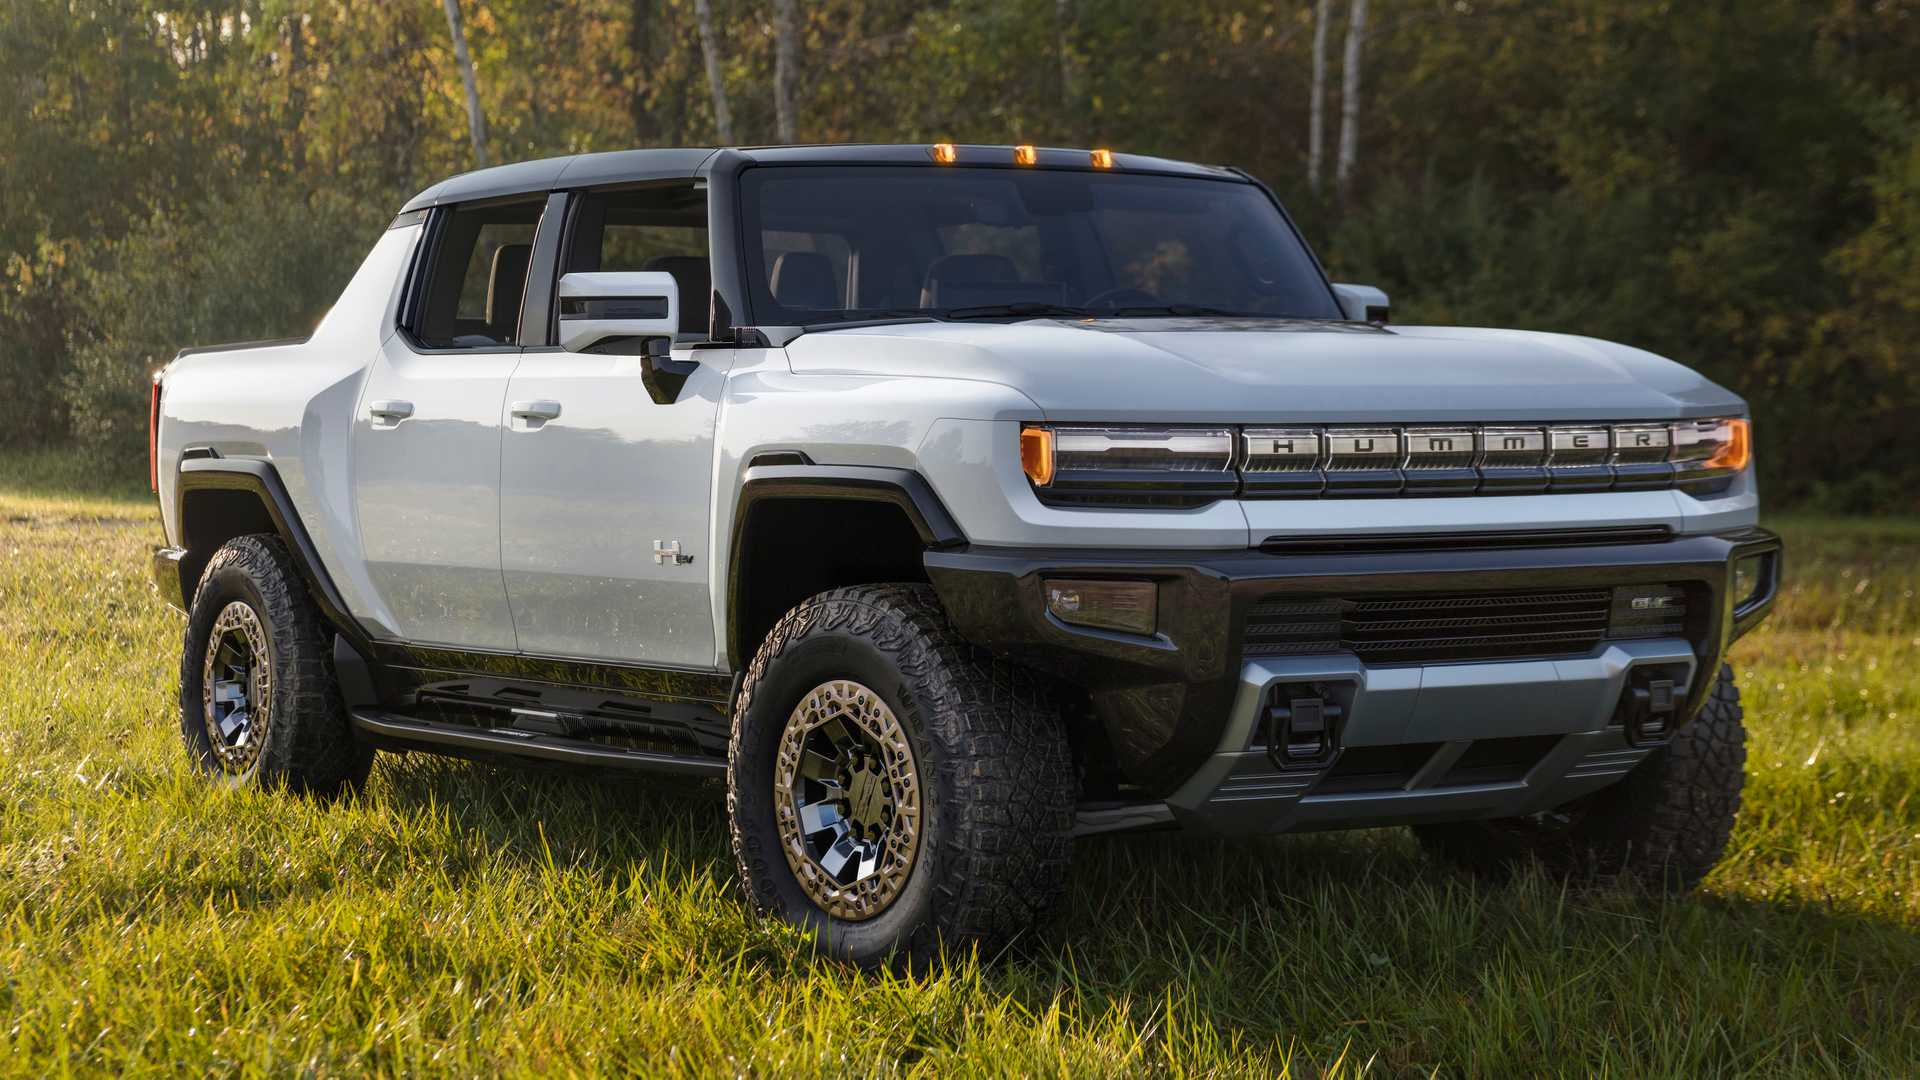 2022 GMC Hummer EV Revealed: Pricing, Images, Range & Specs